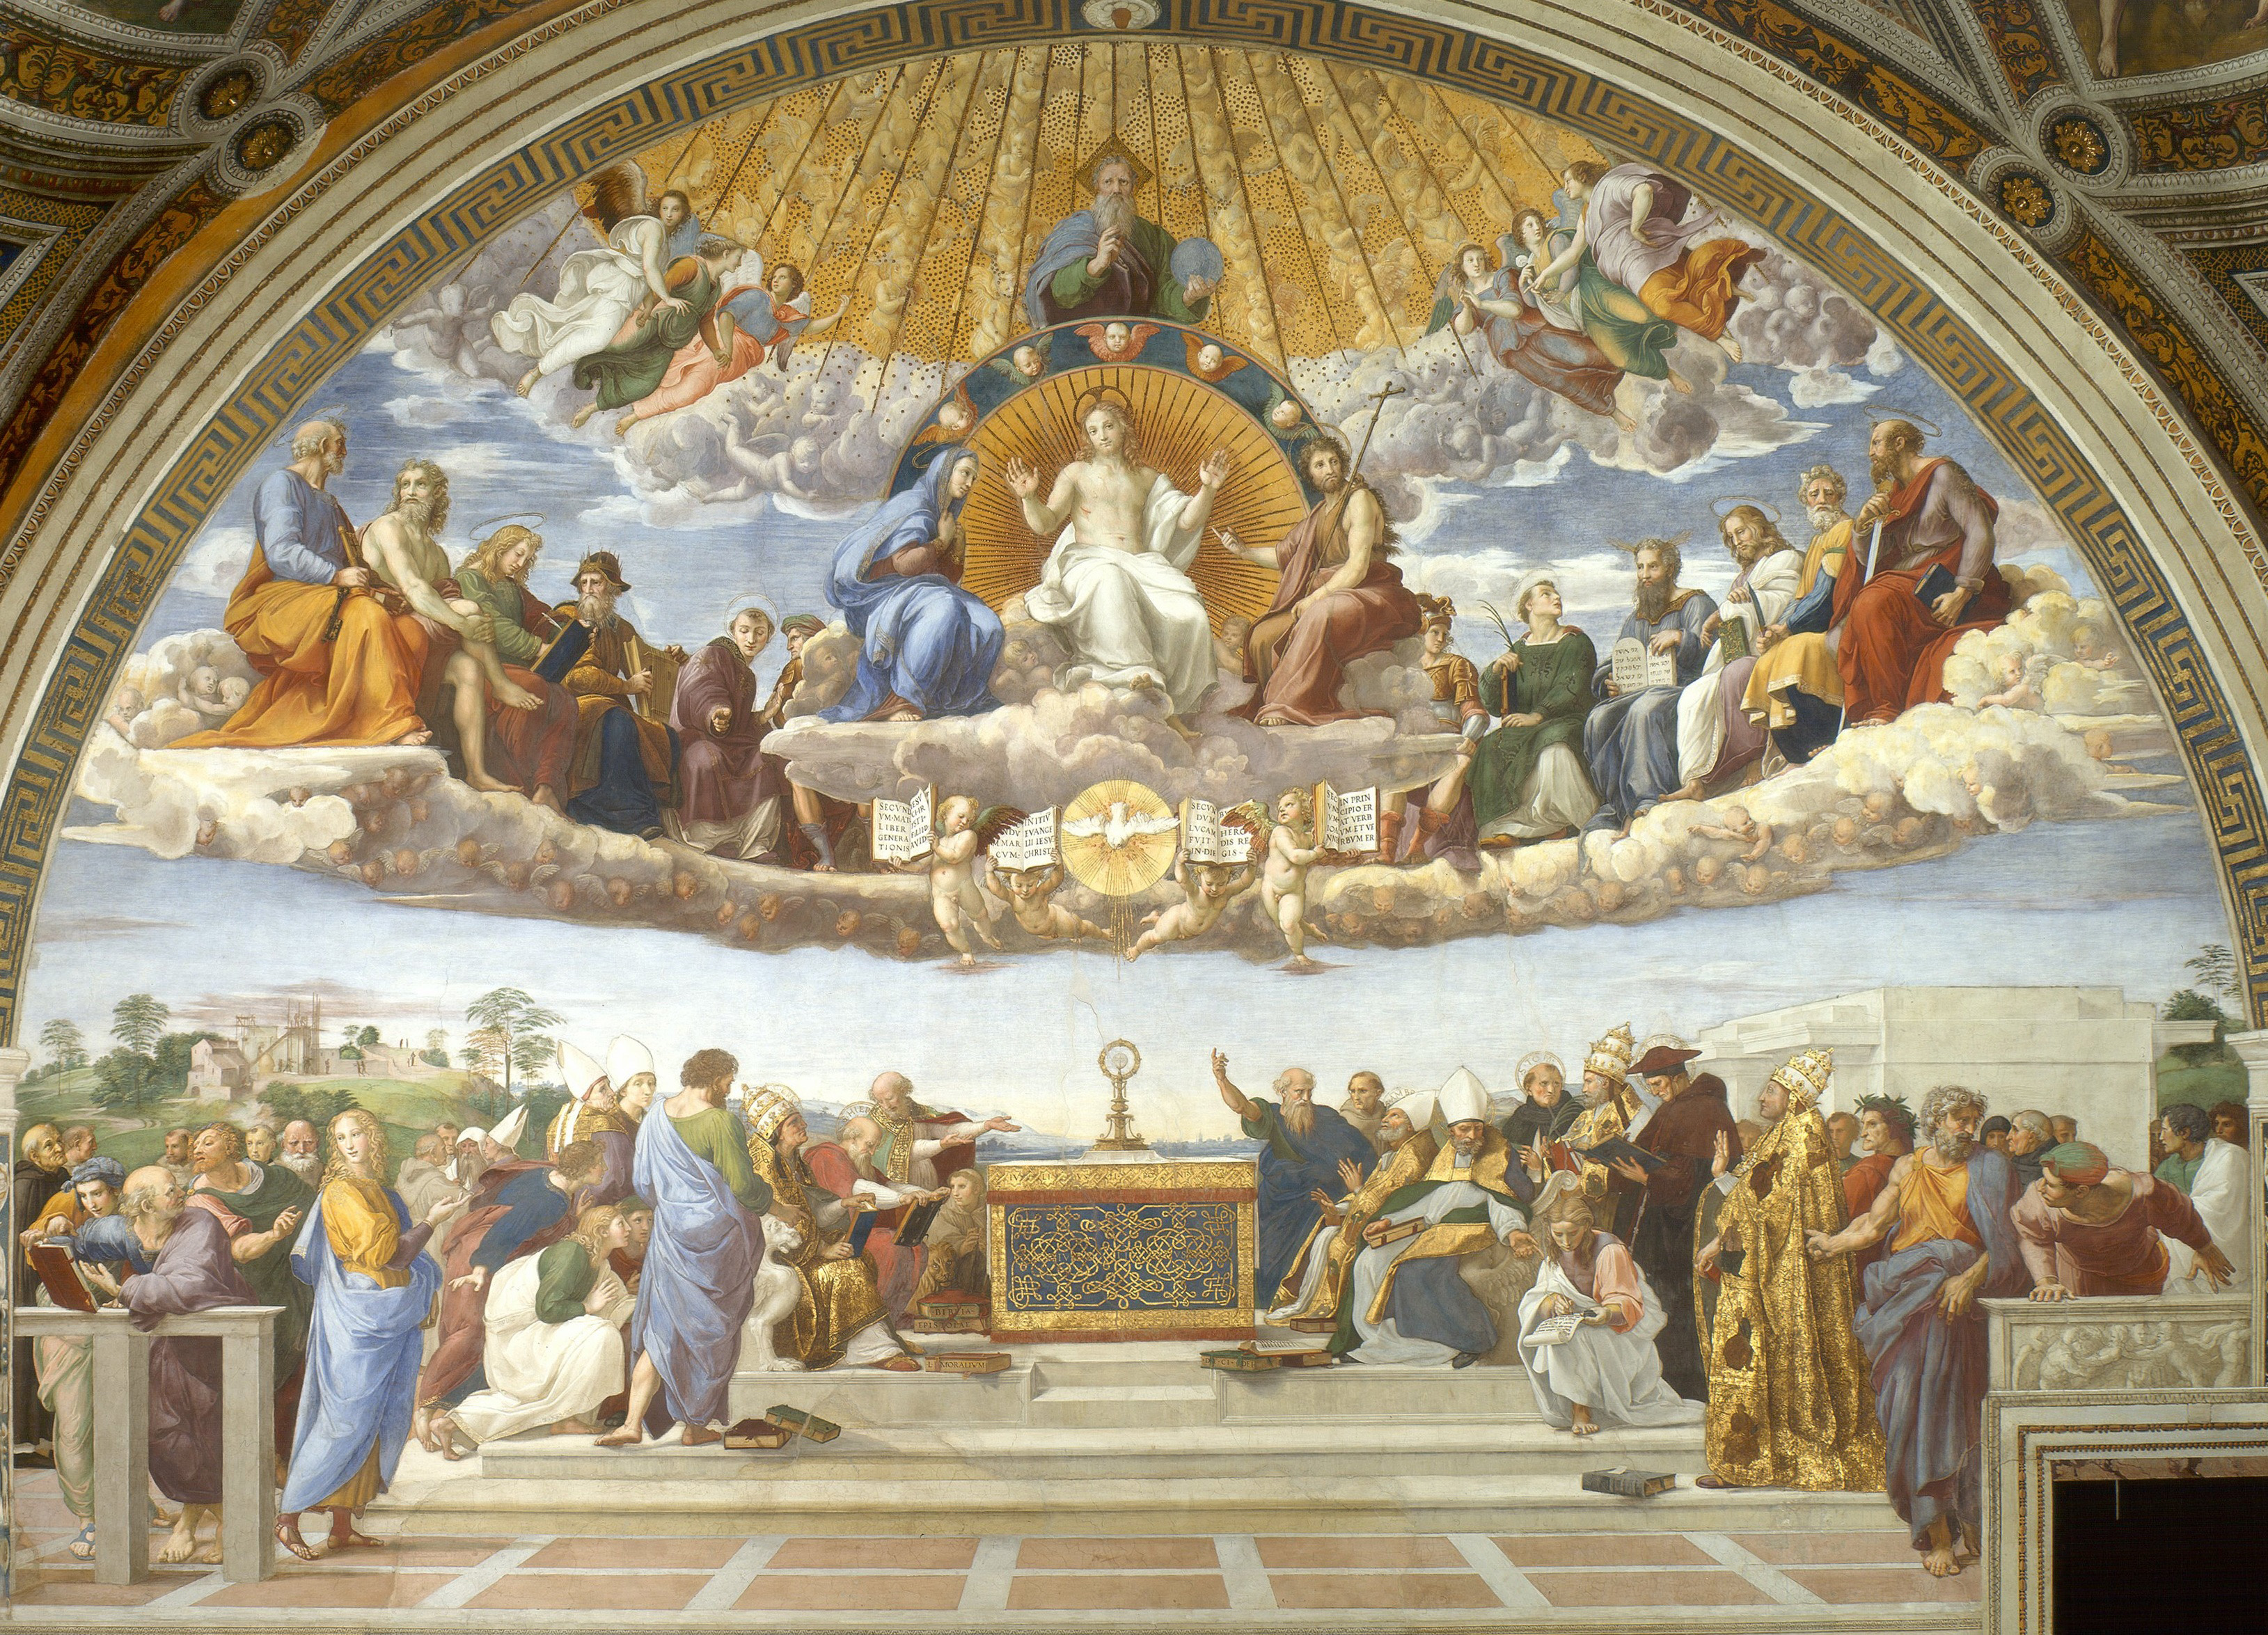 On The Eucharist: Conclusion